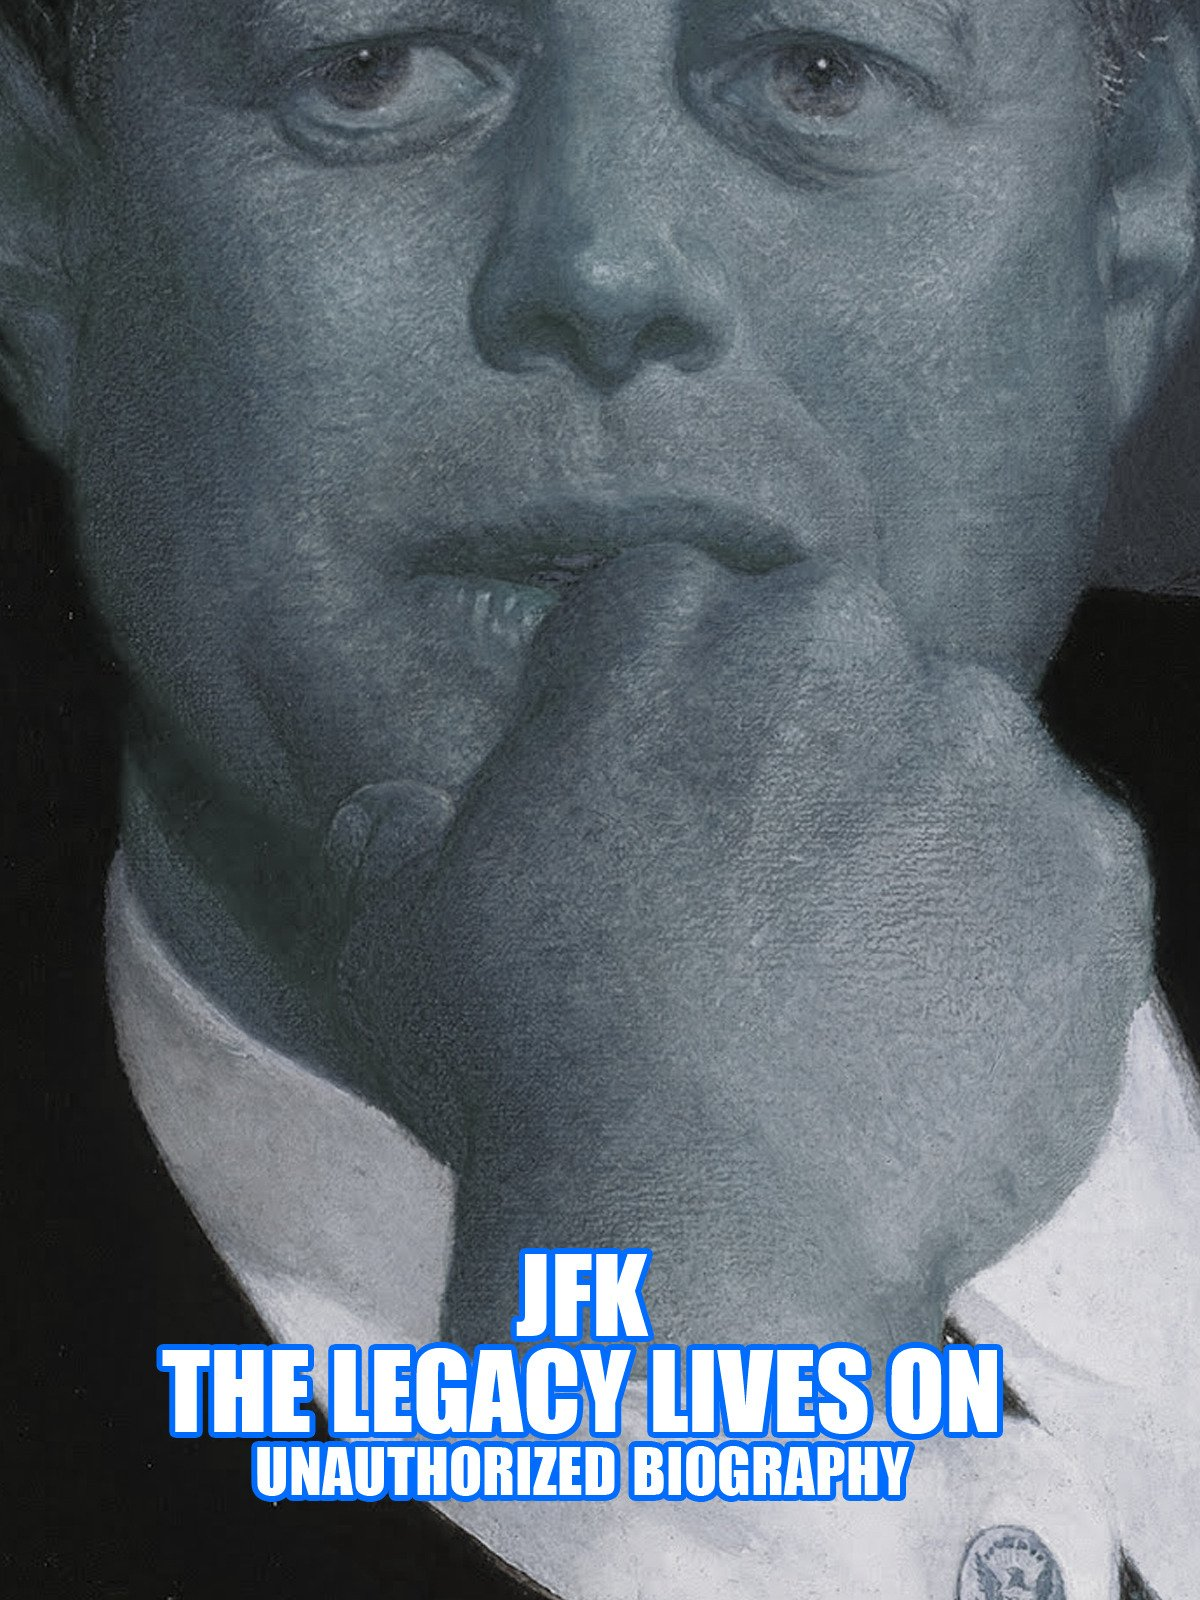 JFK The Legacy Lives On